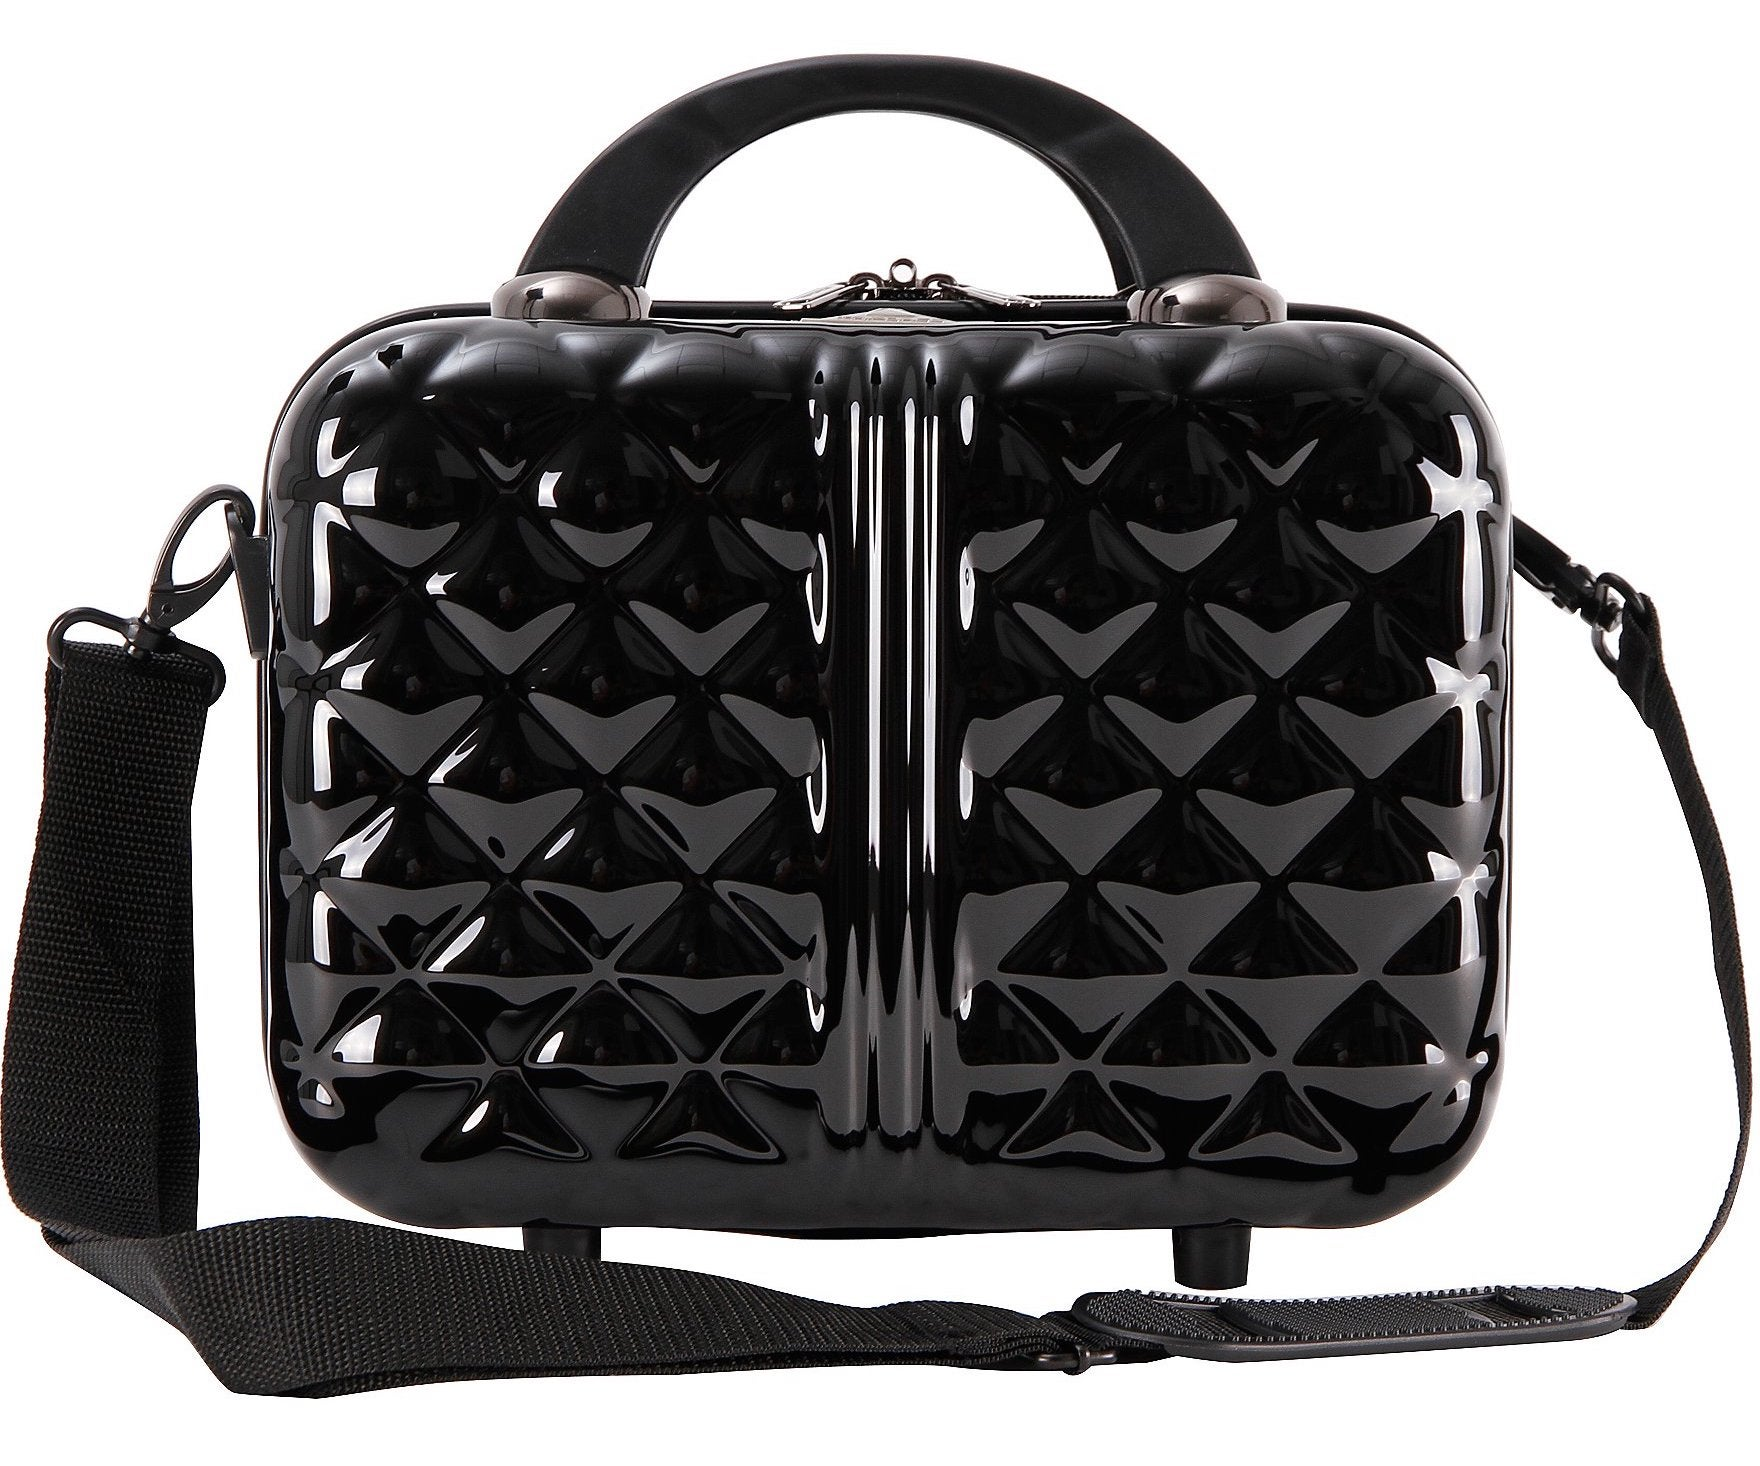 """Triforce Provence - Colección 12 """"Hardside Travel Beauty Colorblock Case"""